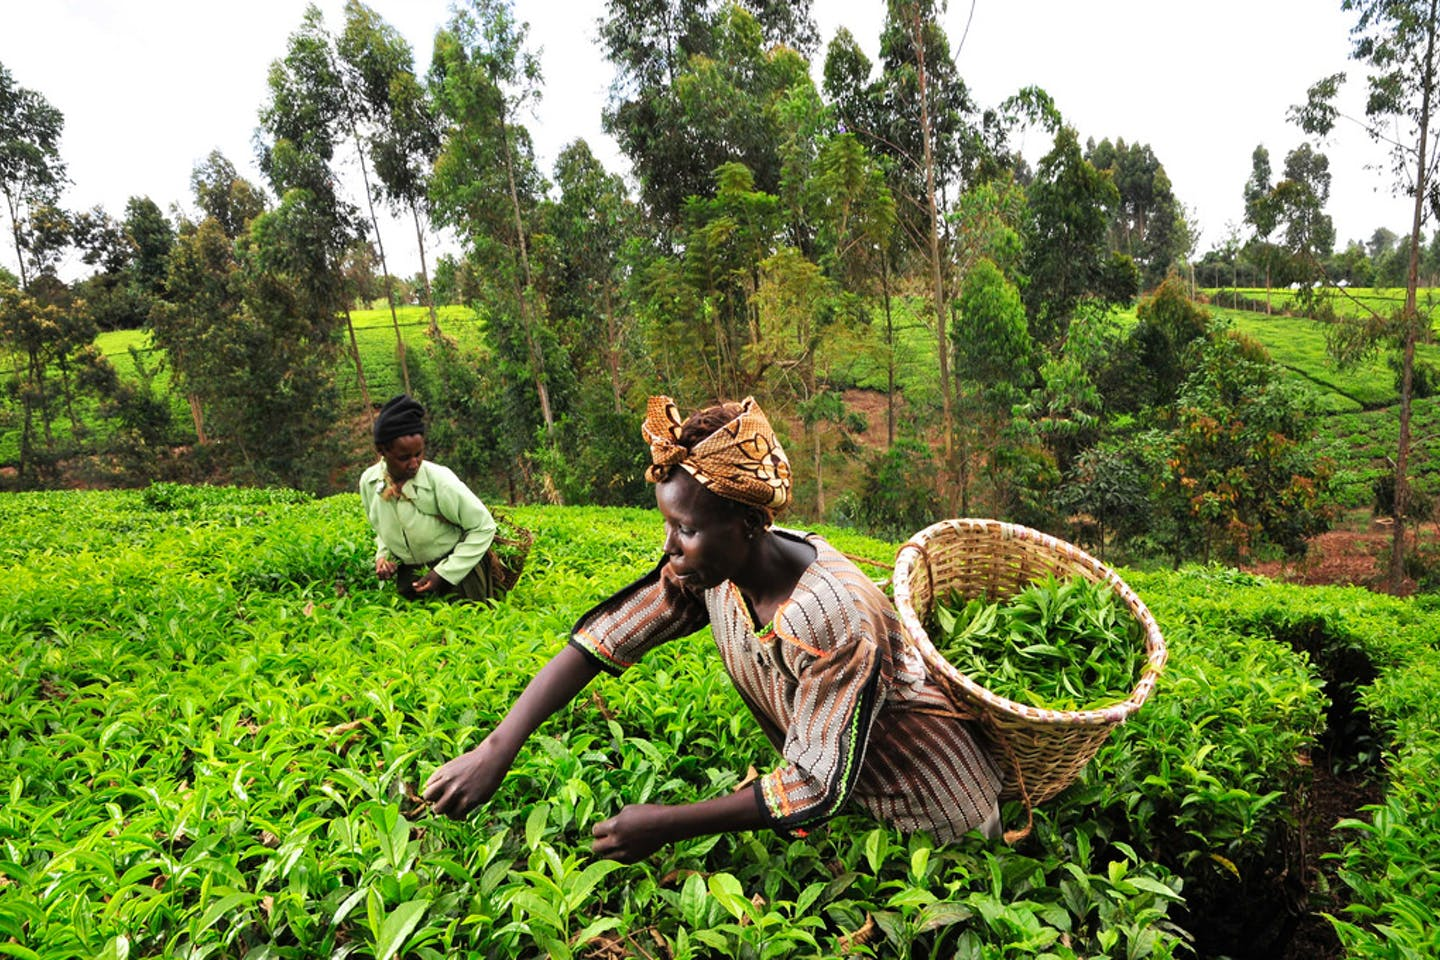 Tea pickers in Kenya's Mount Kenya region.